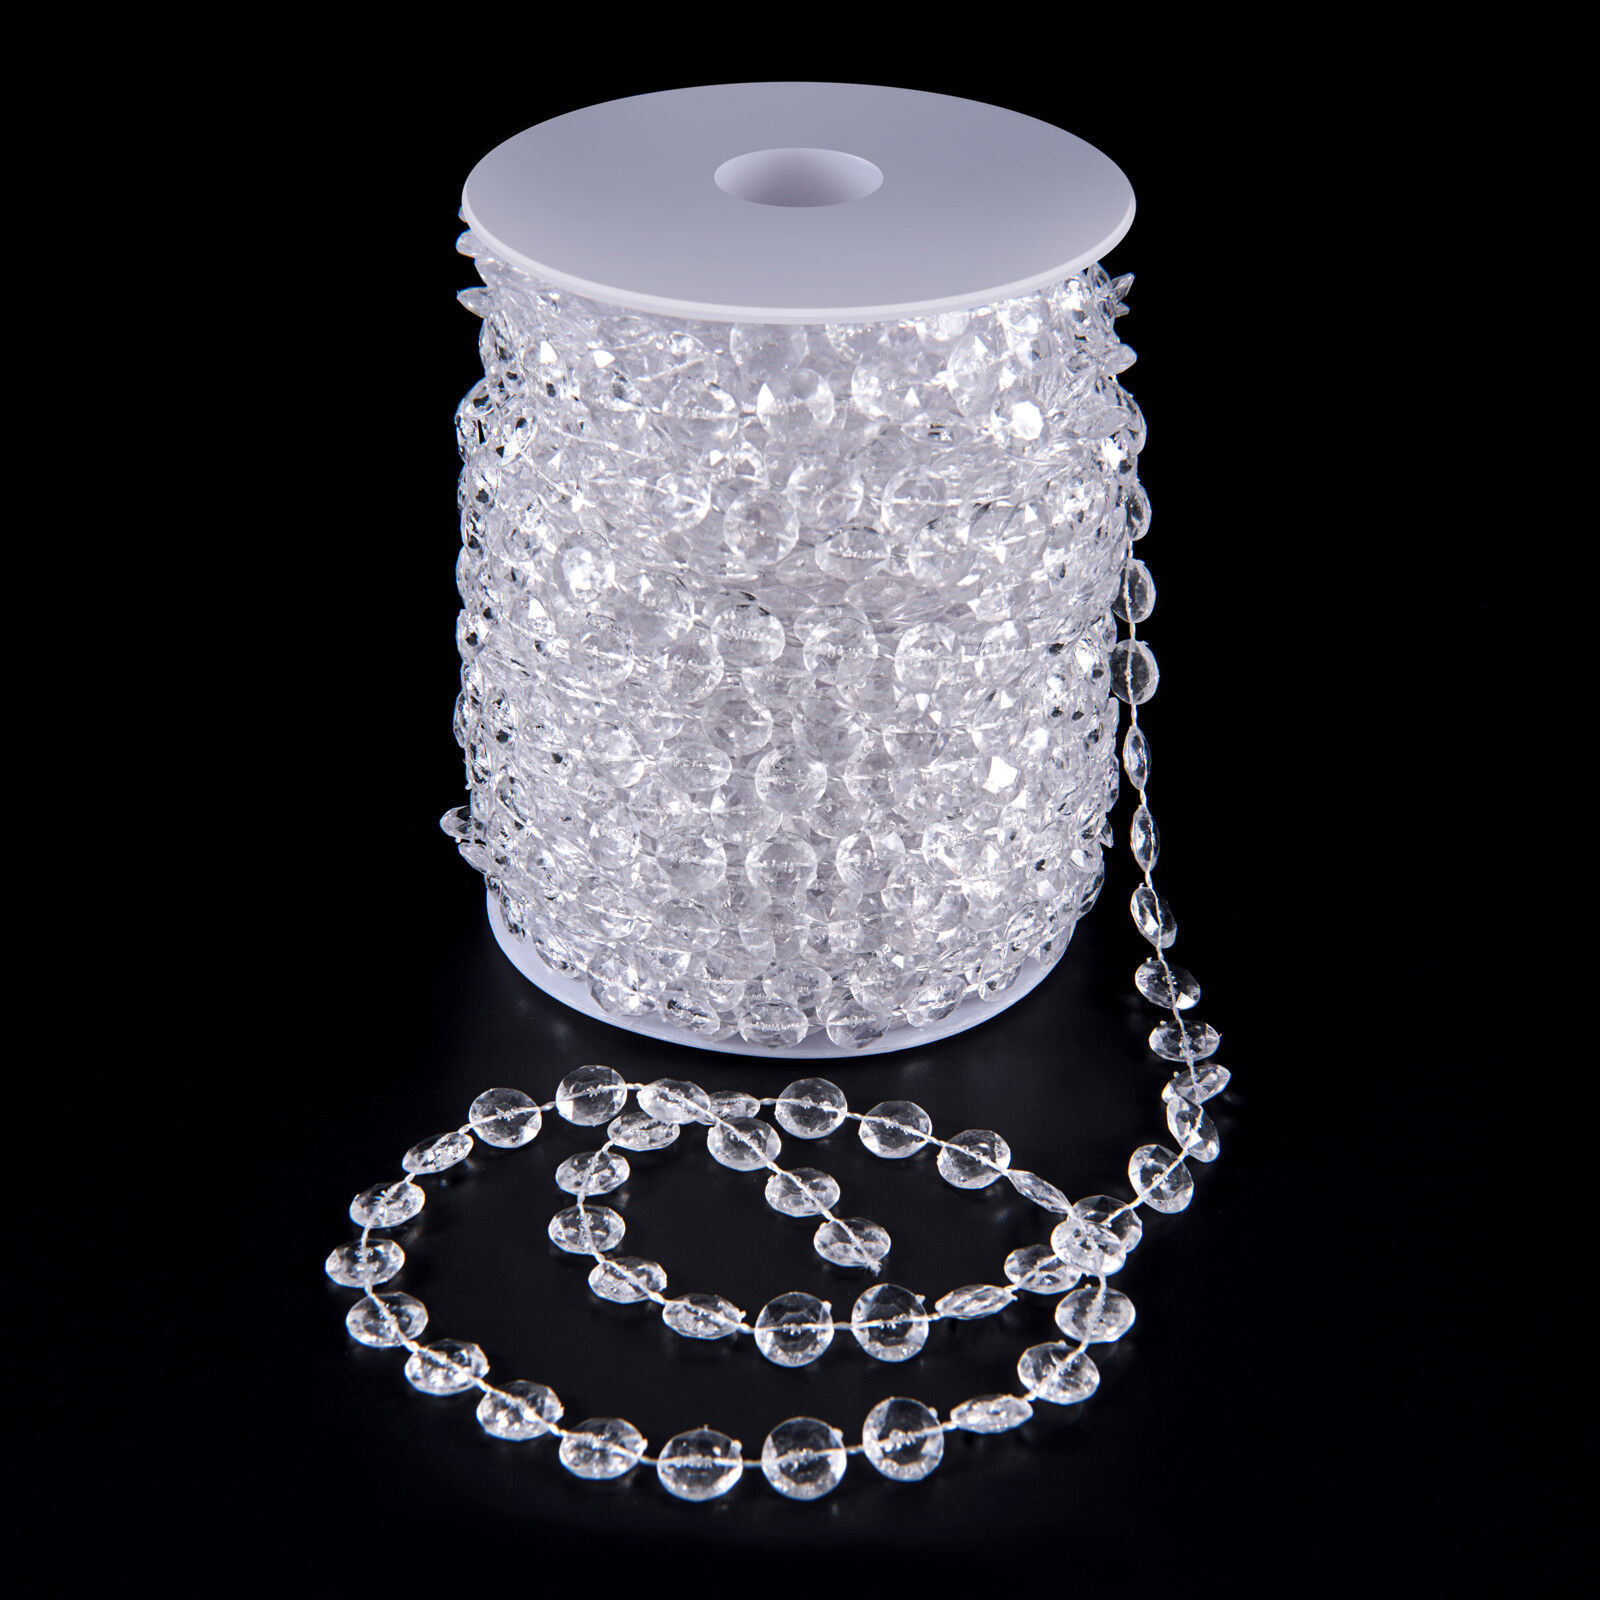 99 FT Garland Diamond Strand Acrylic Crystal Bead Beaded Wedding Decoration Home & Garden